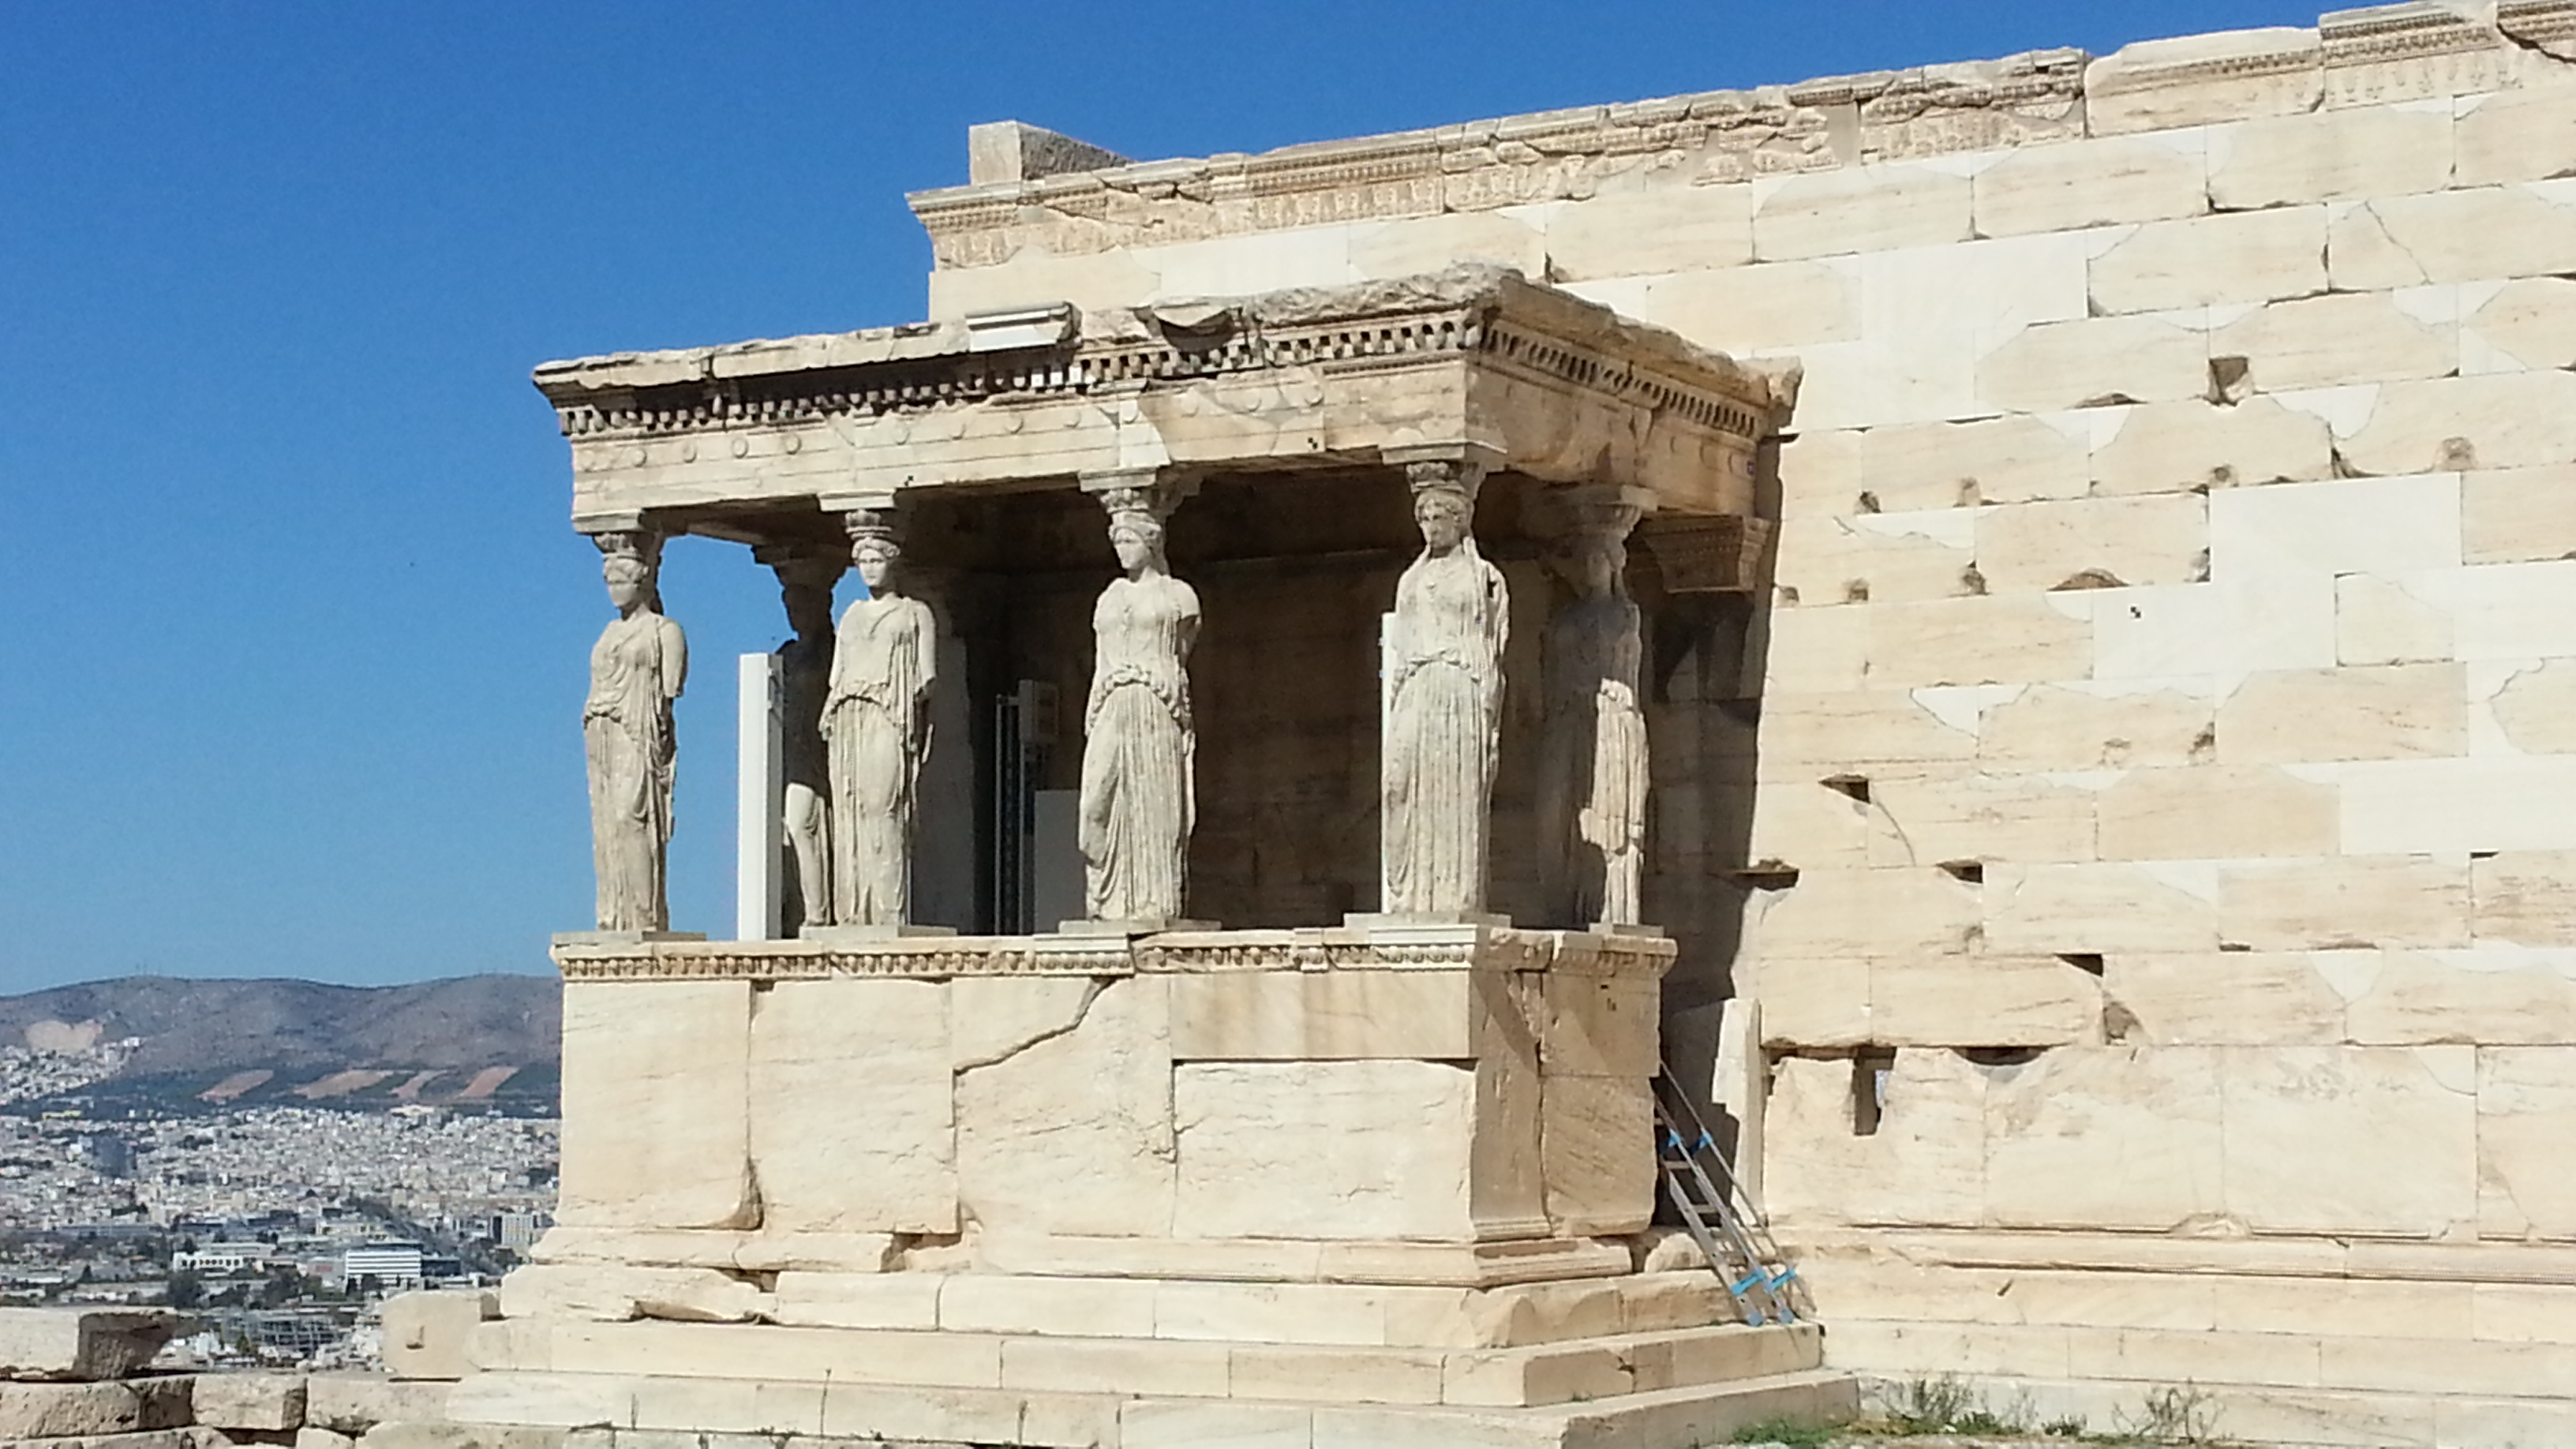 Athena's Temple at the Acropolis